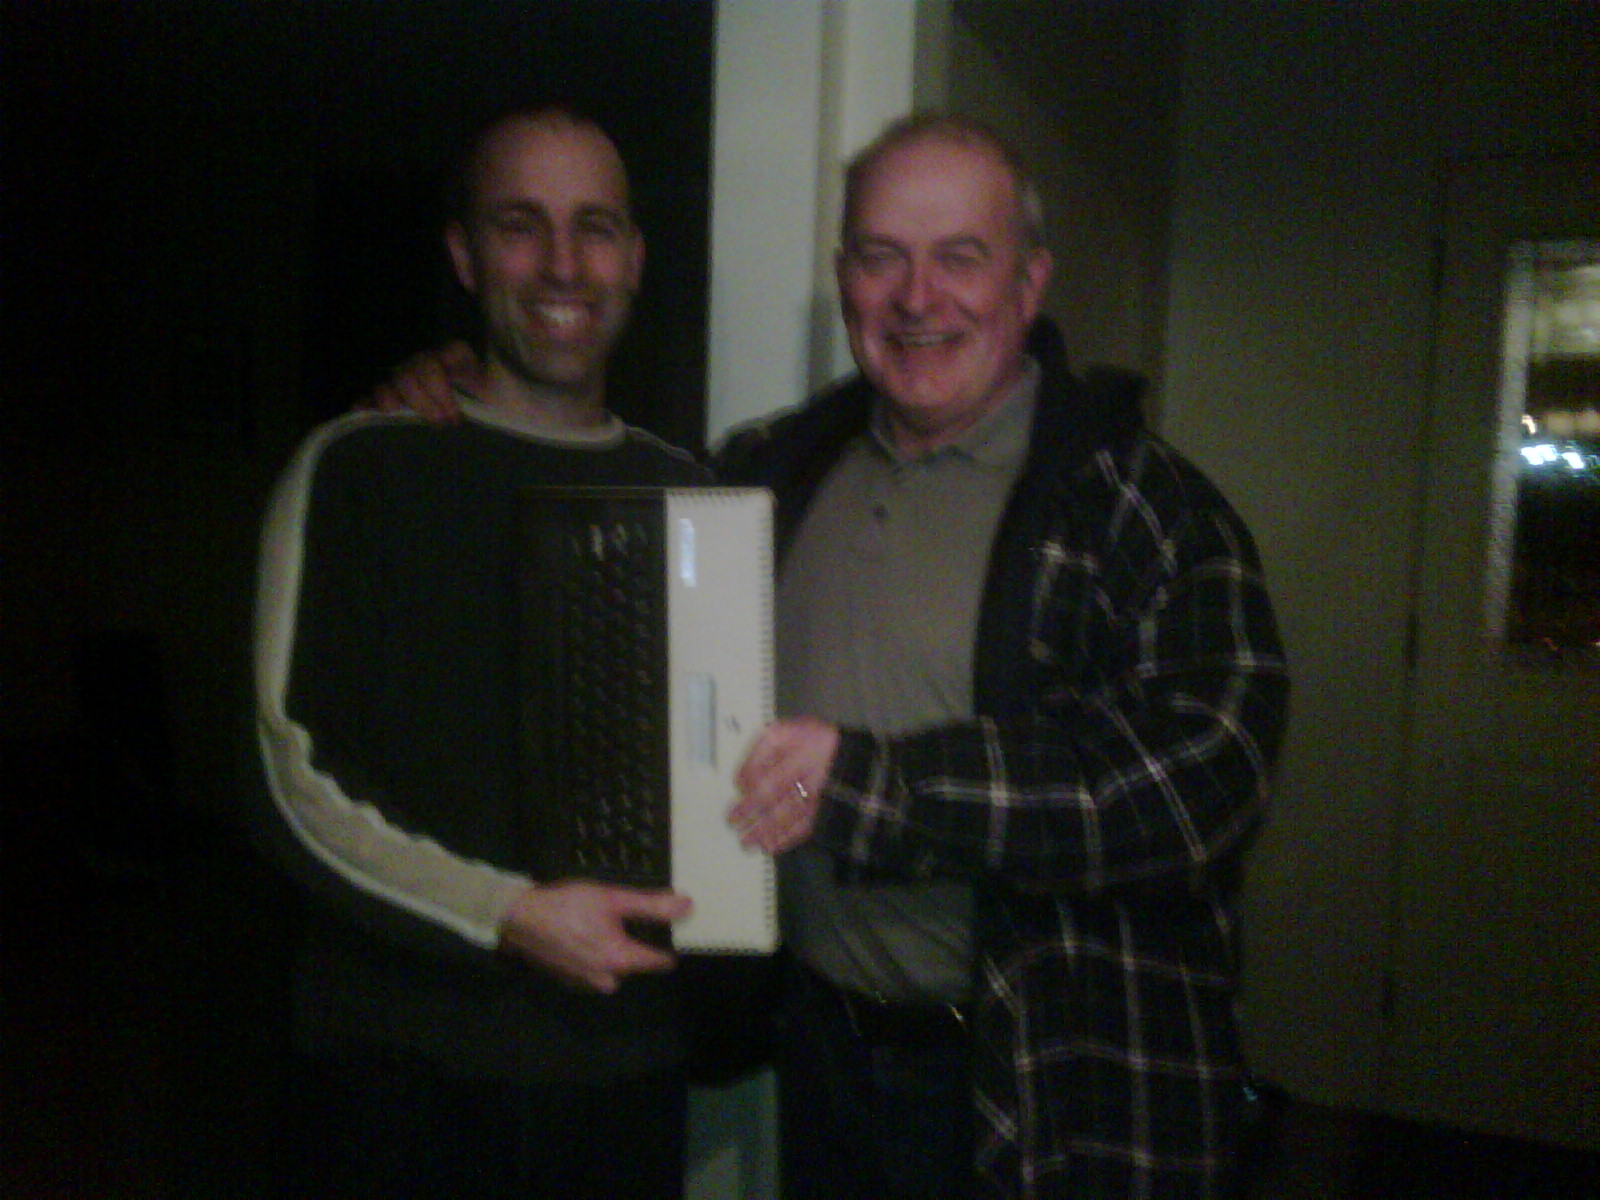 Receiving an Atari 800XL in 2011